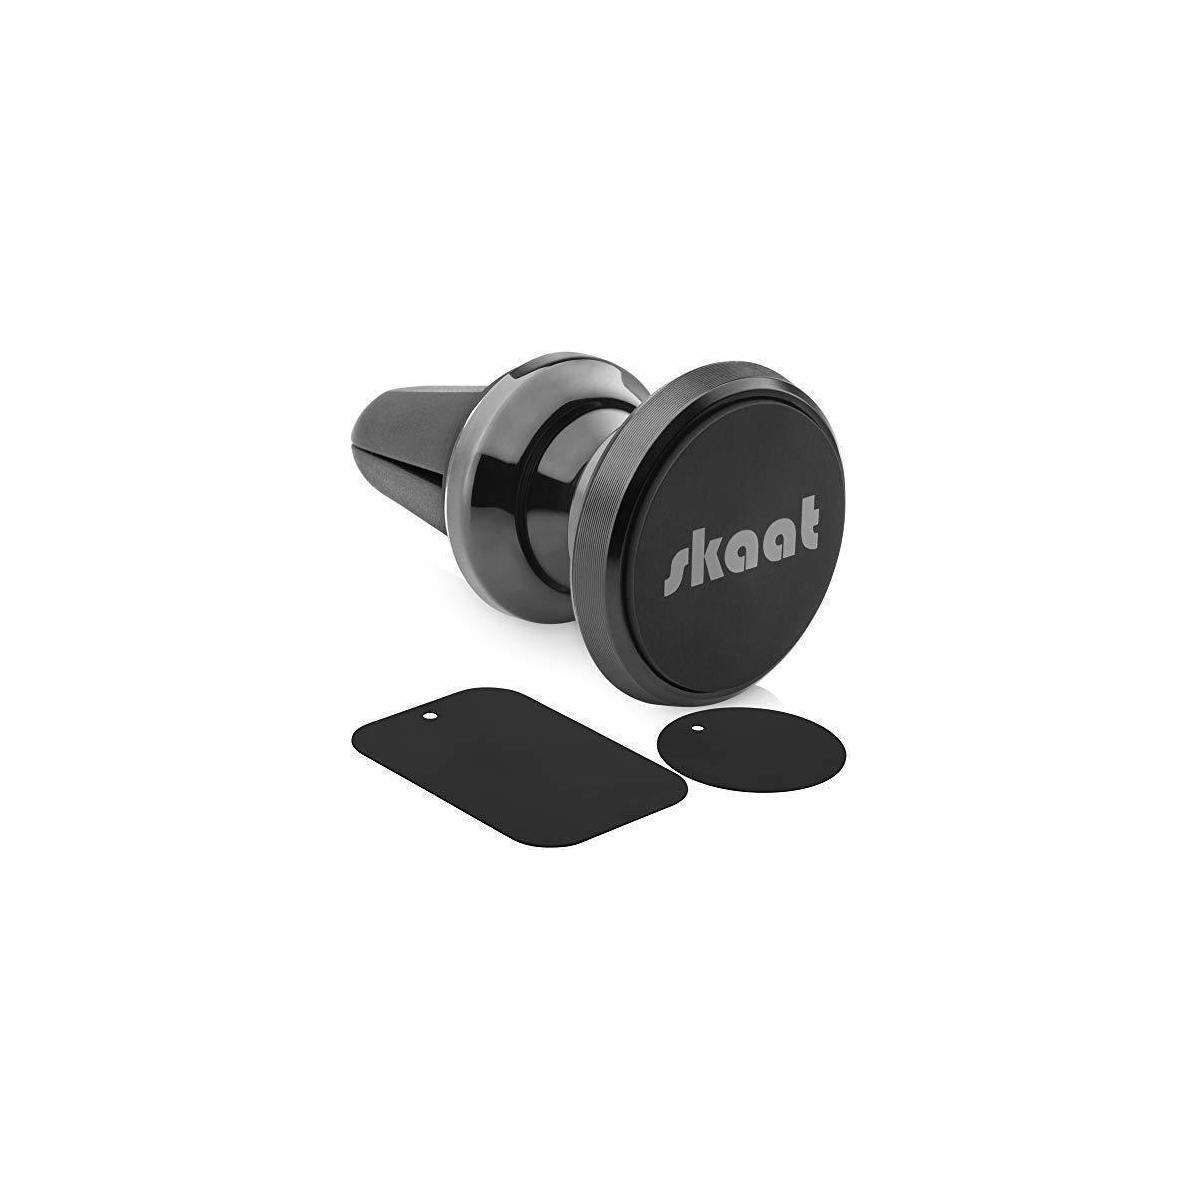 Car Vent Magnetic Phone Mount – Car Vent Magnet - Air Vent Magnetic Car Mount Phone Holder – 360 Degree Magnetic Vent Mount - Perfect for Any Cell Phones and Mini Tablets - in Stylish Black